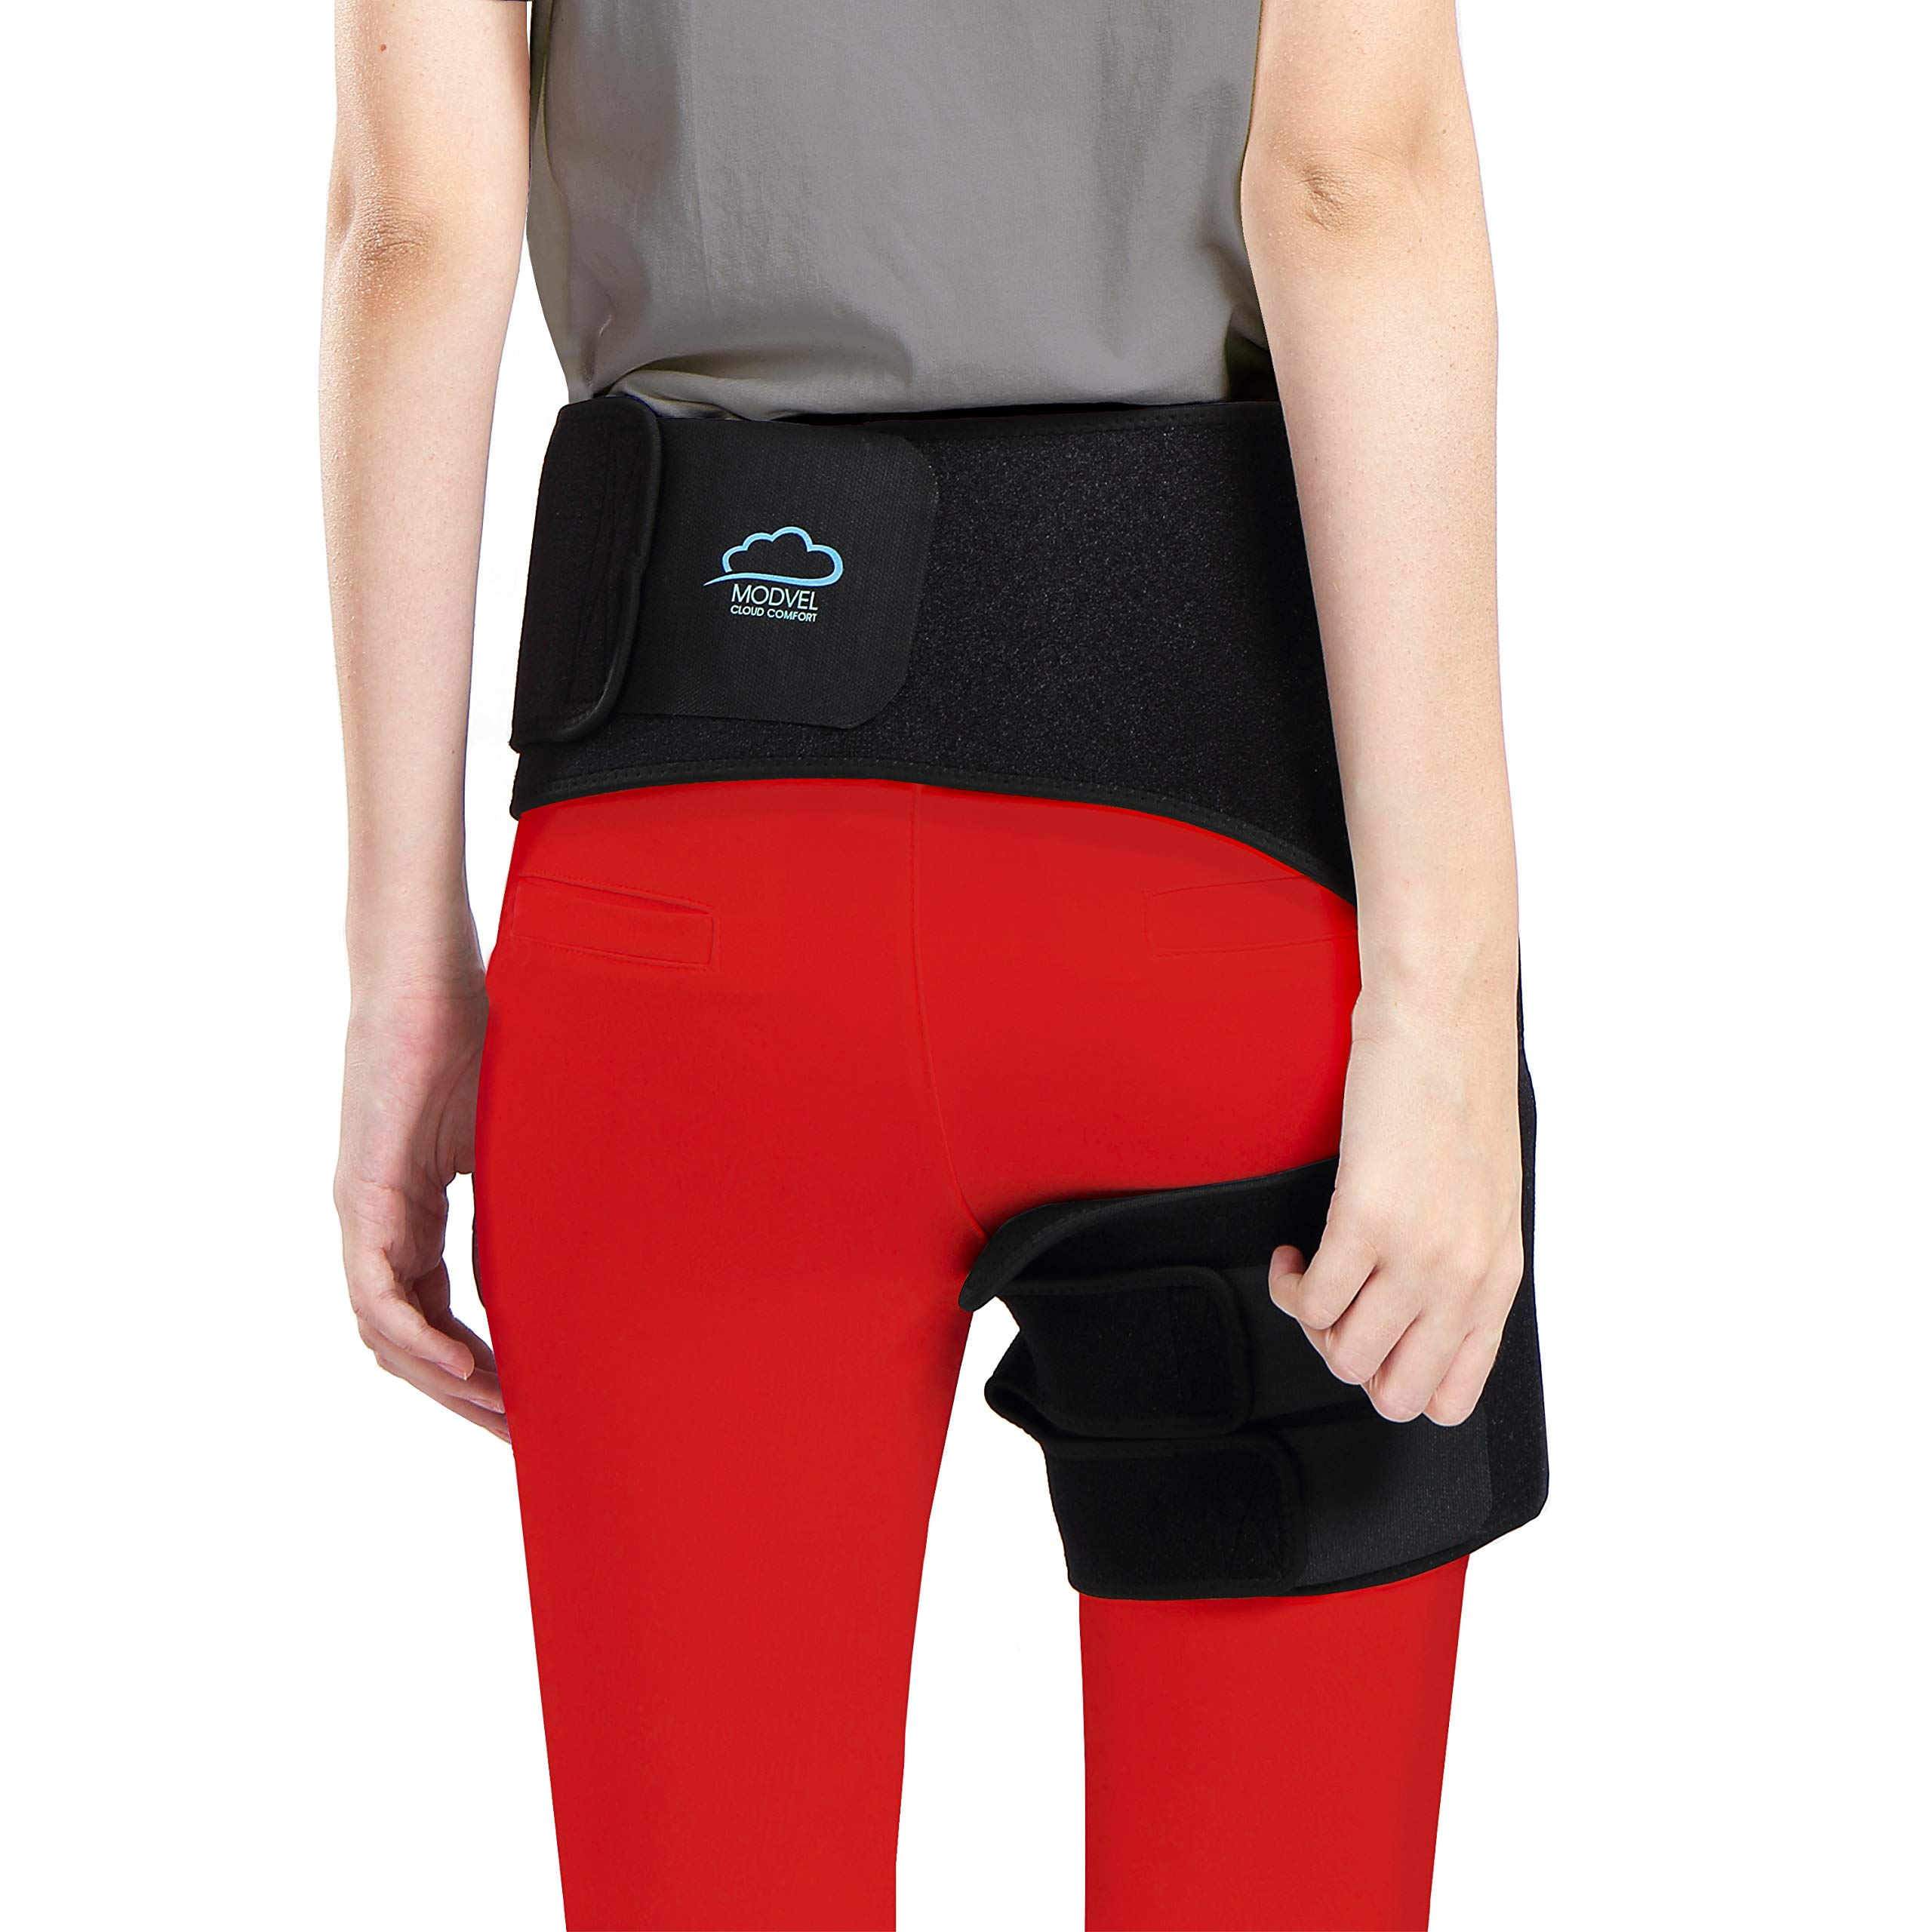 Modvel Comfortable Sciatica Pain Relief Hip Brace for Men & Women | Neoprene & Adjustable Strap | Anti-Slip & Sweat-Resistant | Perfect for Groin, Quad & Hamstring Injury Recovery (MV-135) by Modvel